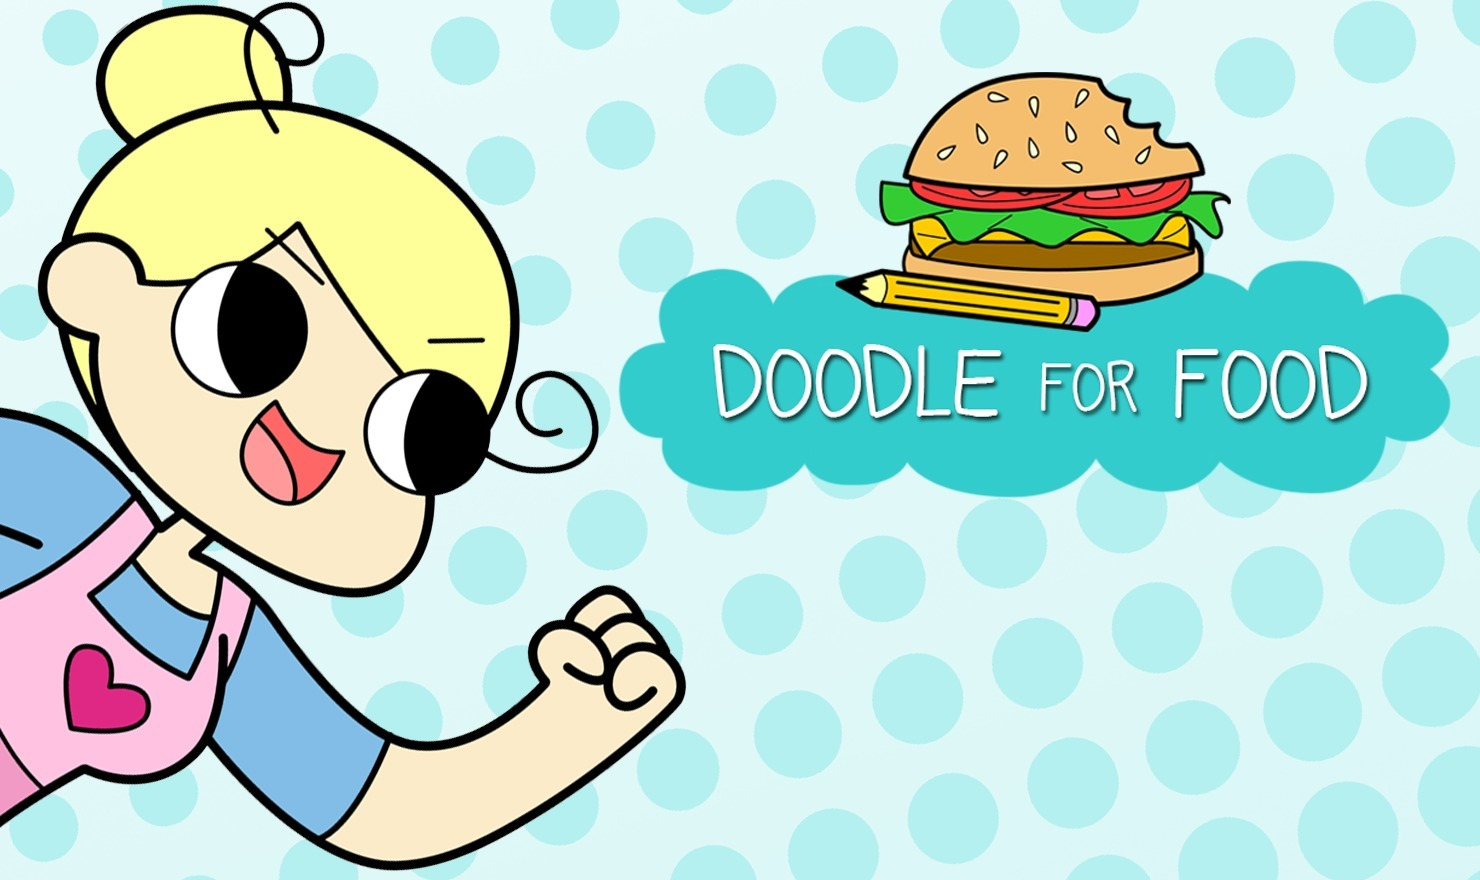 New Comic Alert: 'Doodle for Food'